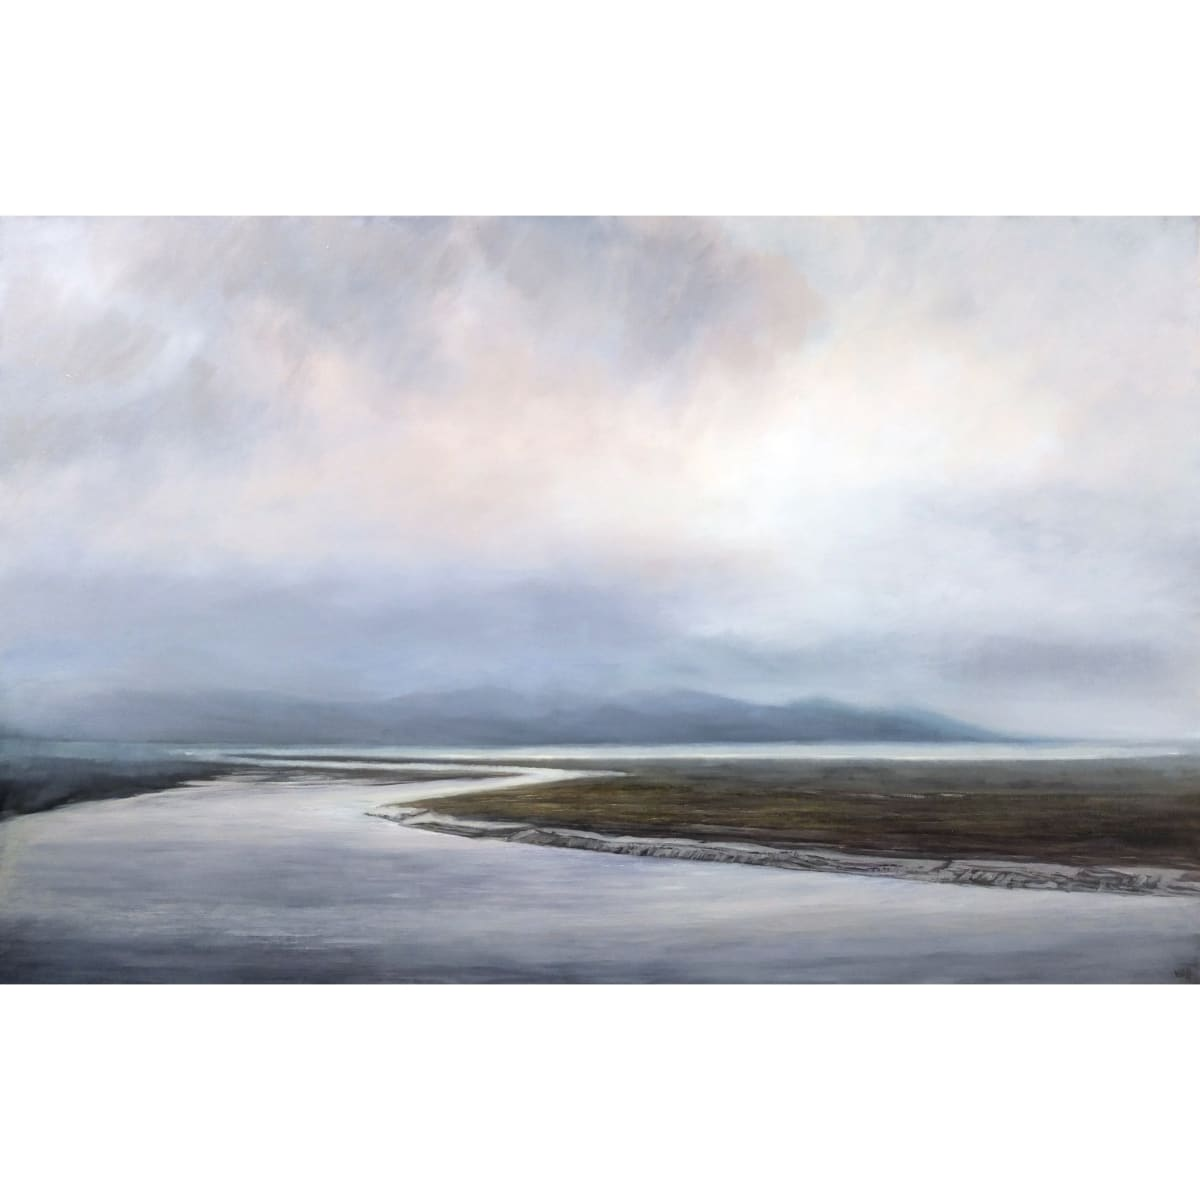 Victoria Orr Ewing The River Bladnoch meeting Wigtown Bay, 2019 initialled and dated 19 oil on canvas 30 x 48 inches